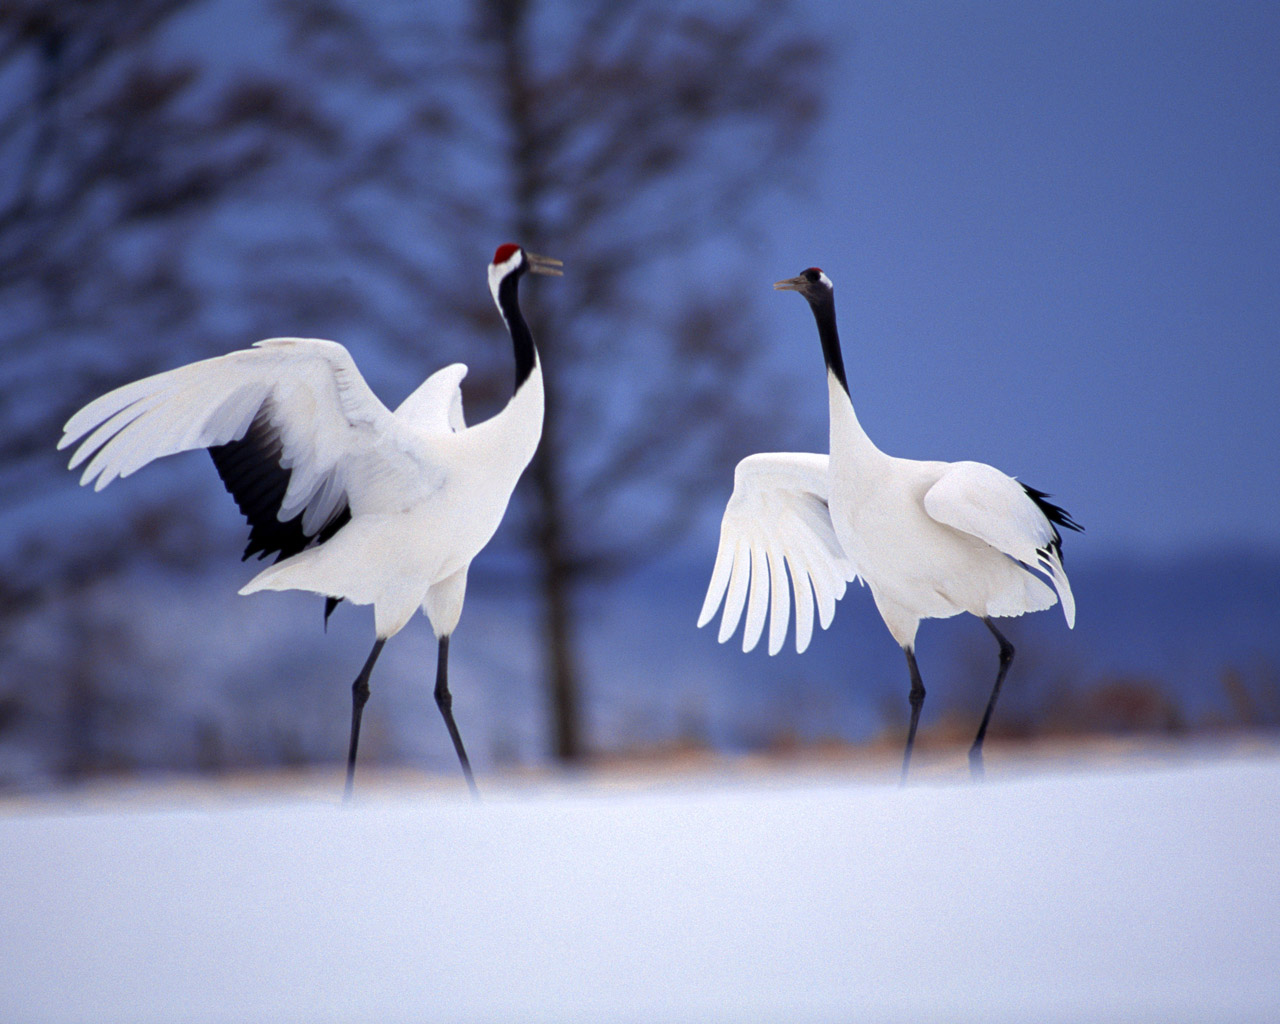 High-resolution pictures of birds 3680